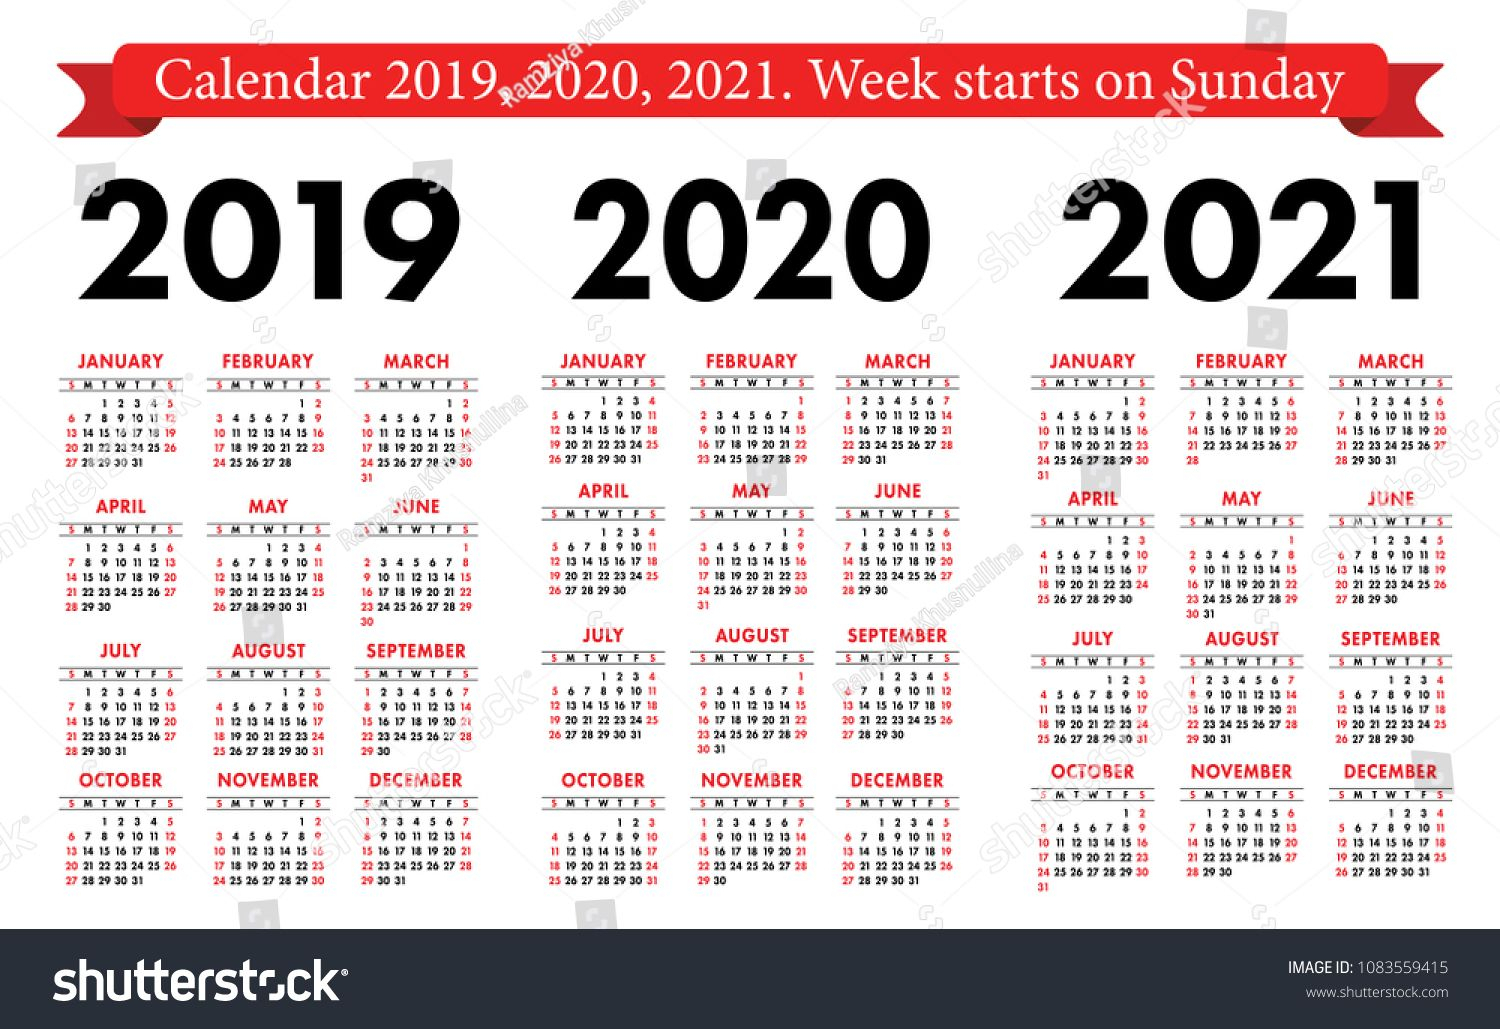 Pocket Calendar 2019, 2020, 2021 Set. Basic Simple Template with 2021 Pocket Calendar